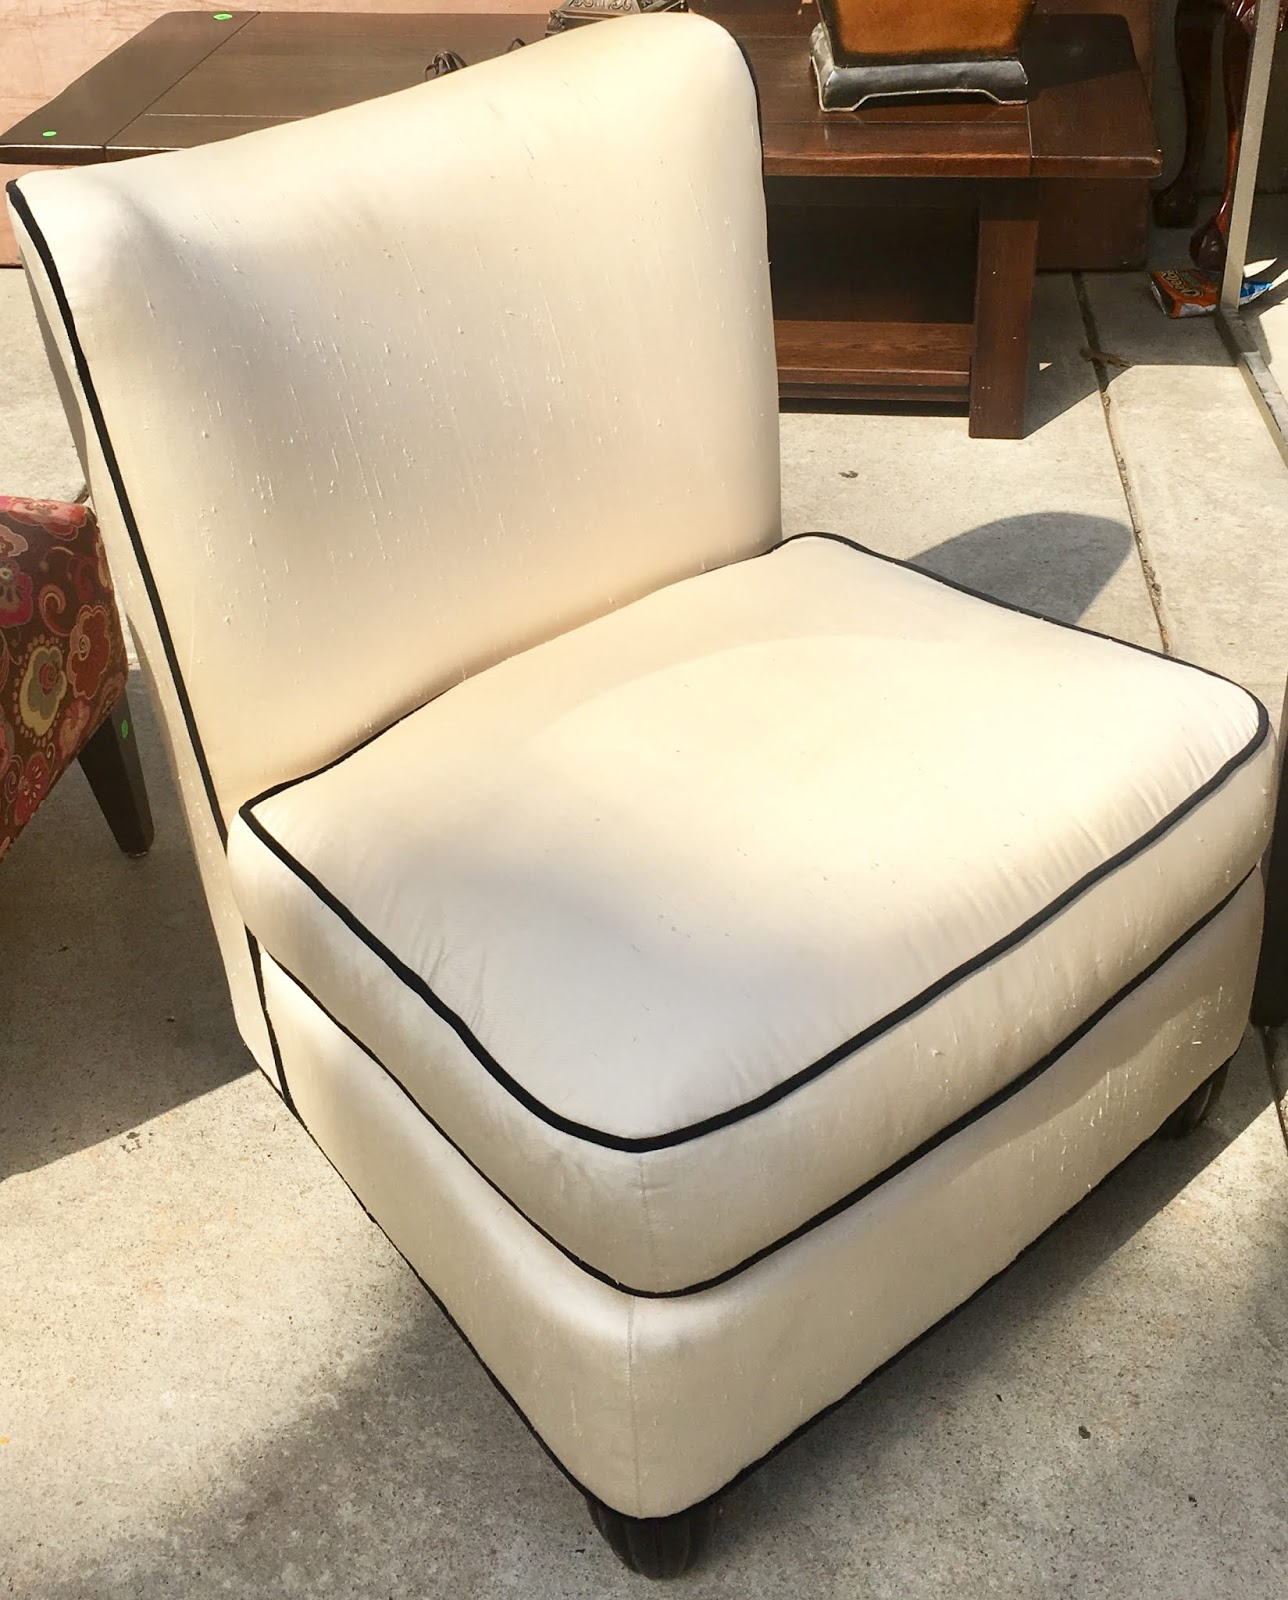 Brilliant Uhuru Furniture Collectibles 467111 Cream Armless Chair Ibusinesslaw Wood Chair Design Ideas Ibusinesslaworg